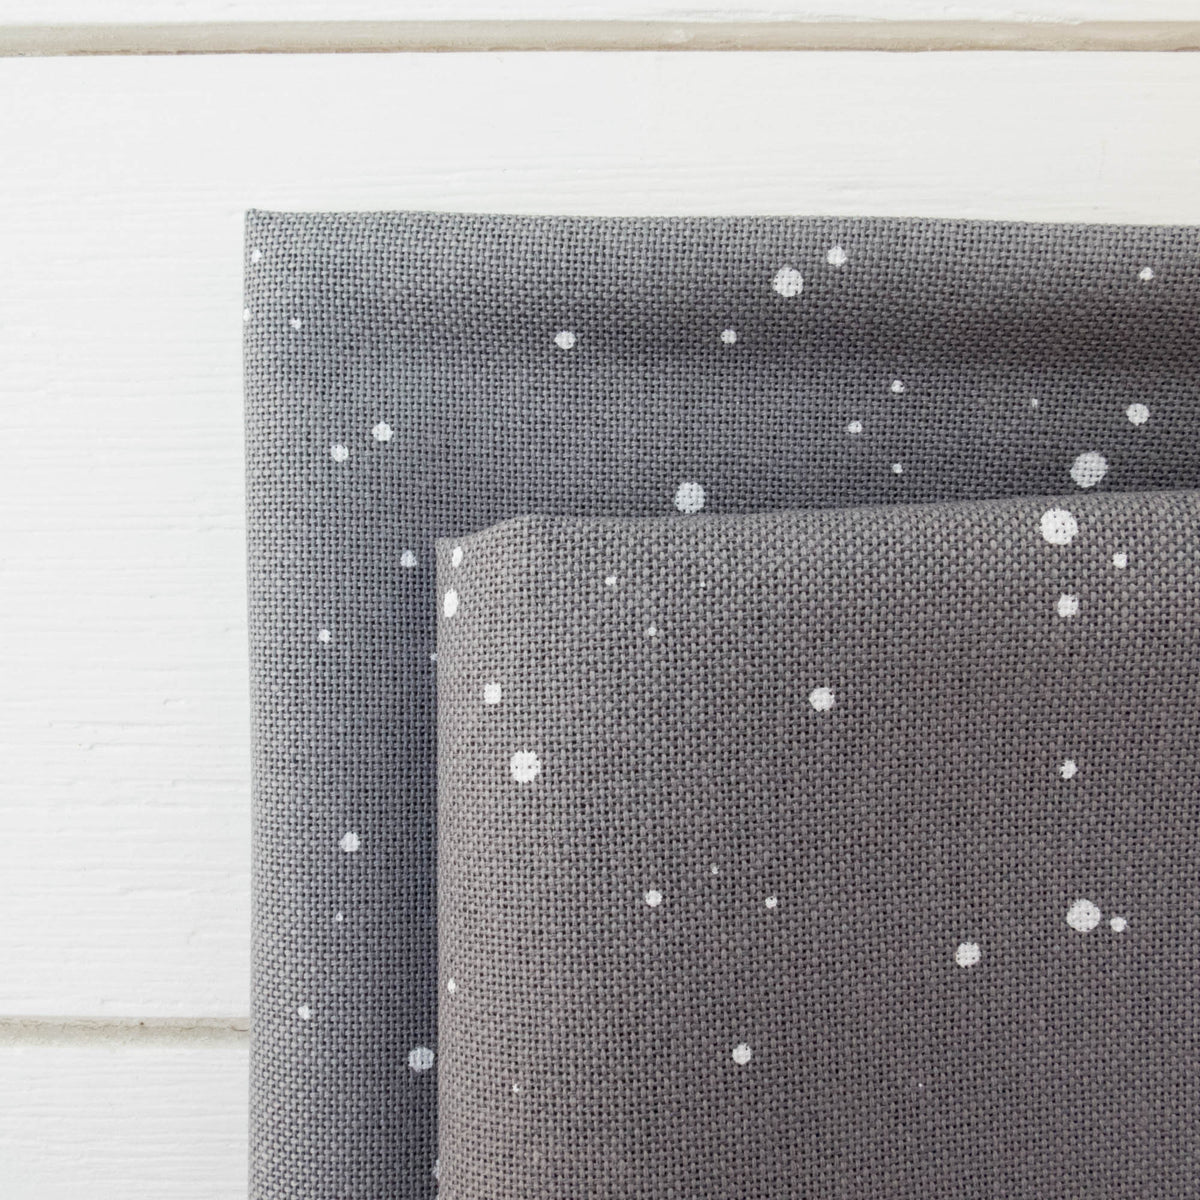 Lugana 32 ct - Basalt Splash Fabric - Snuggly Monkey